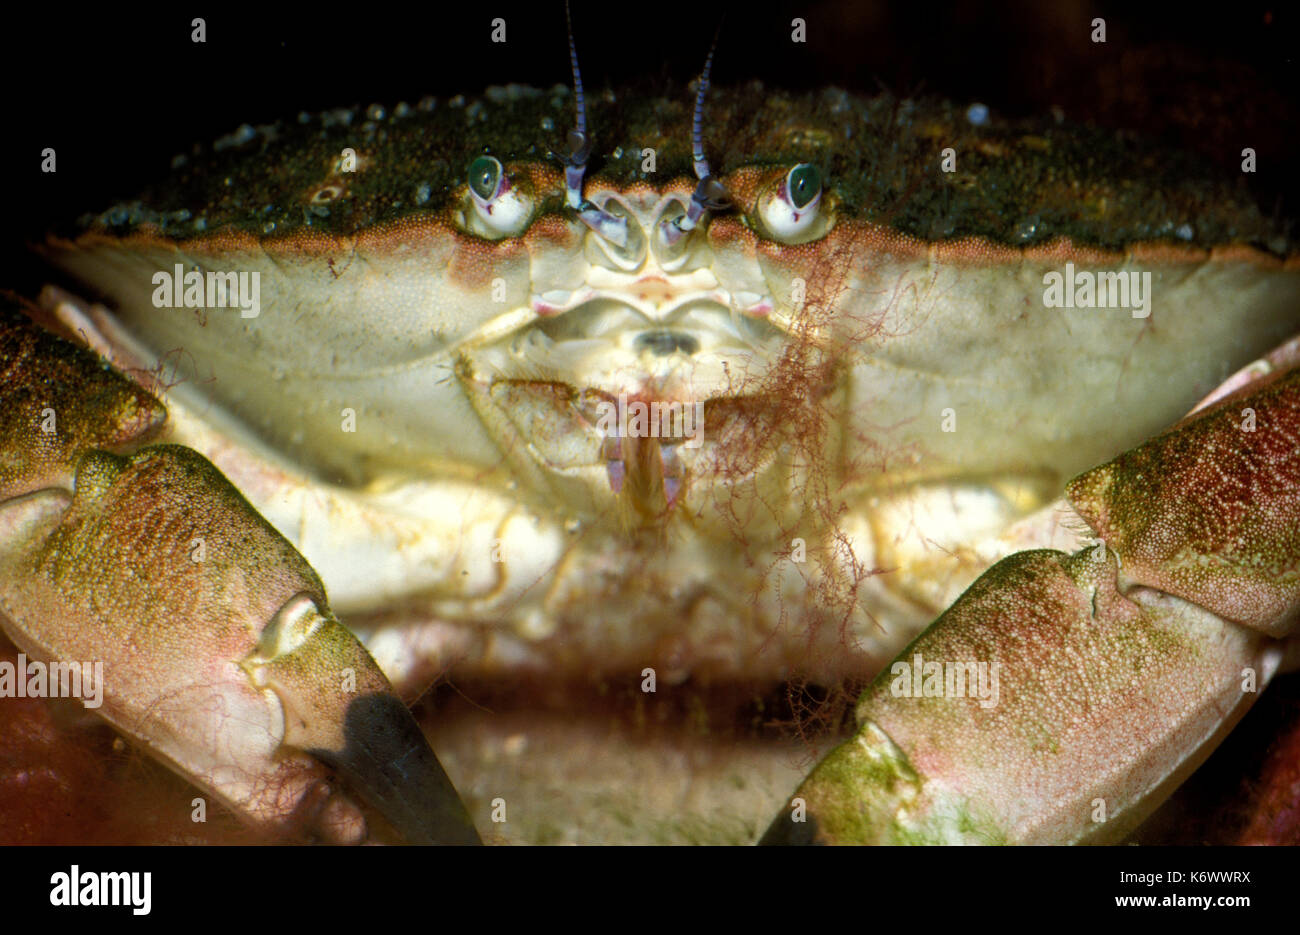 Shore Crab Carcinus Maenas Close Up Showing Eyes And Mouthparts